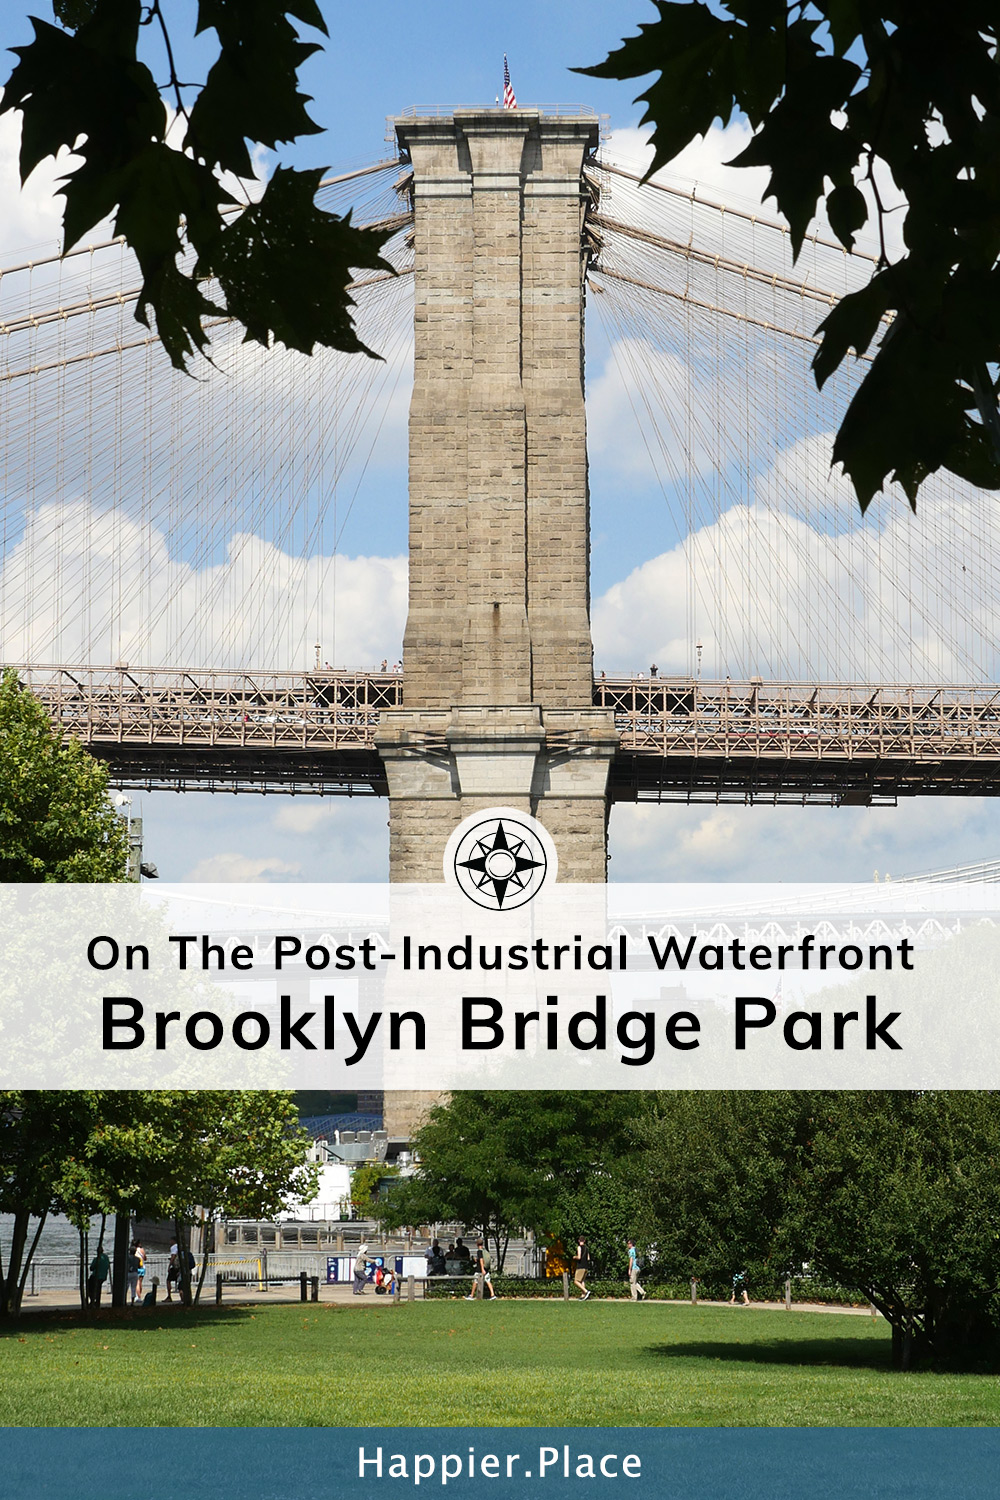 On The Post-Industrial Waterfront: Brooklyn Bridge Park (Brooklyn, NY) #HappierPlace #Brooklyn #NYC #travelguide #cityguide #citypark